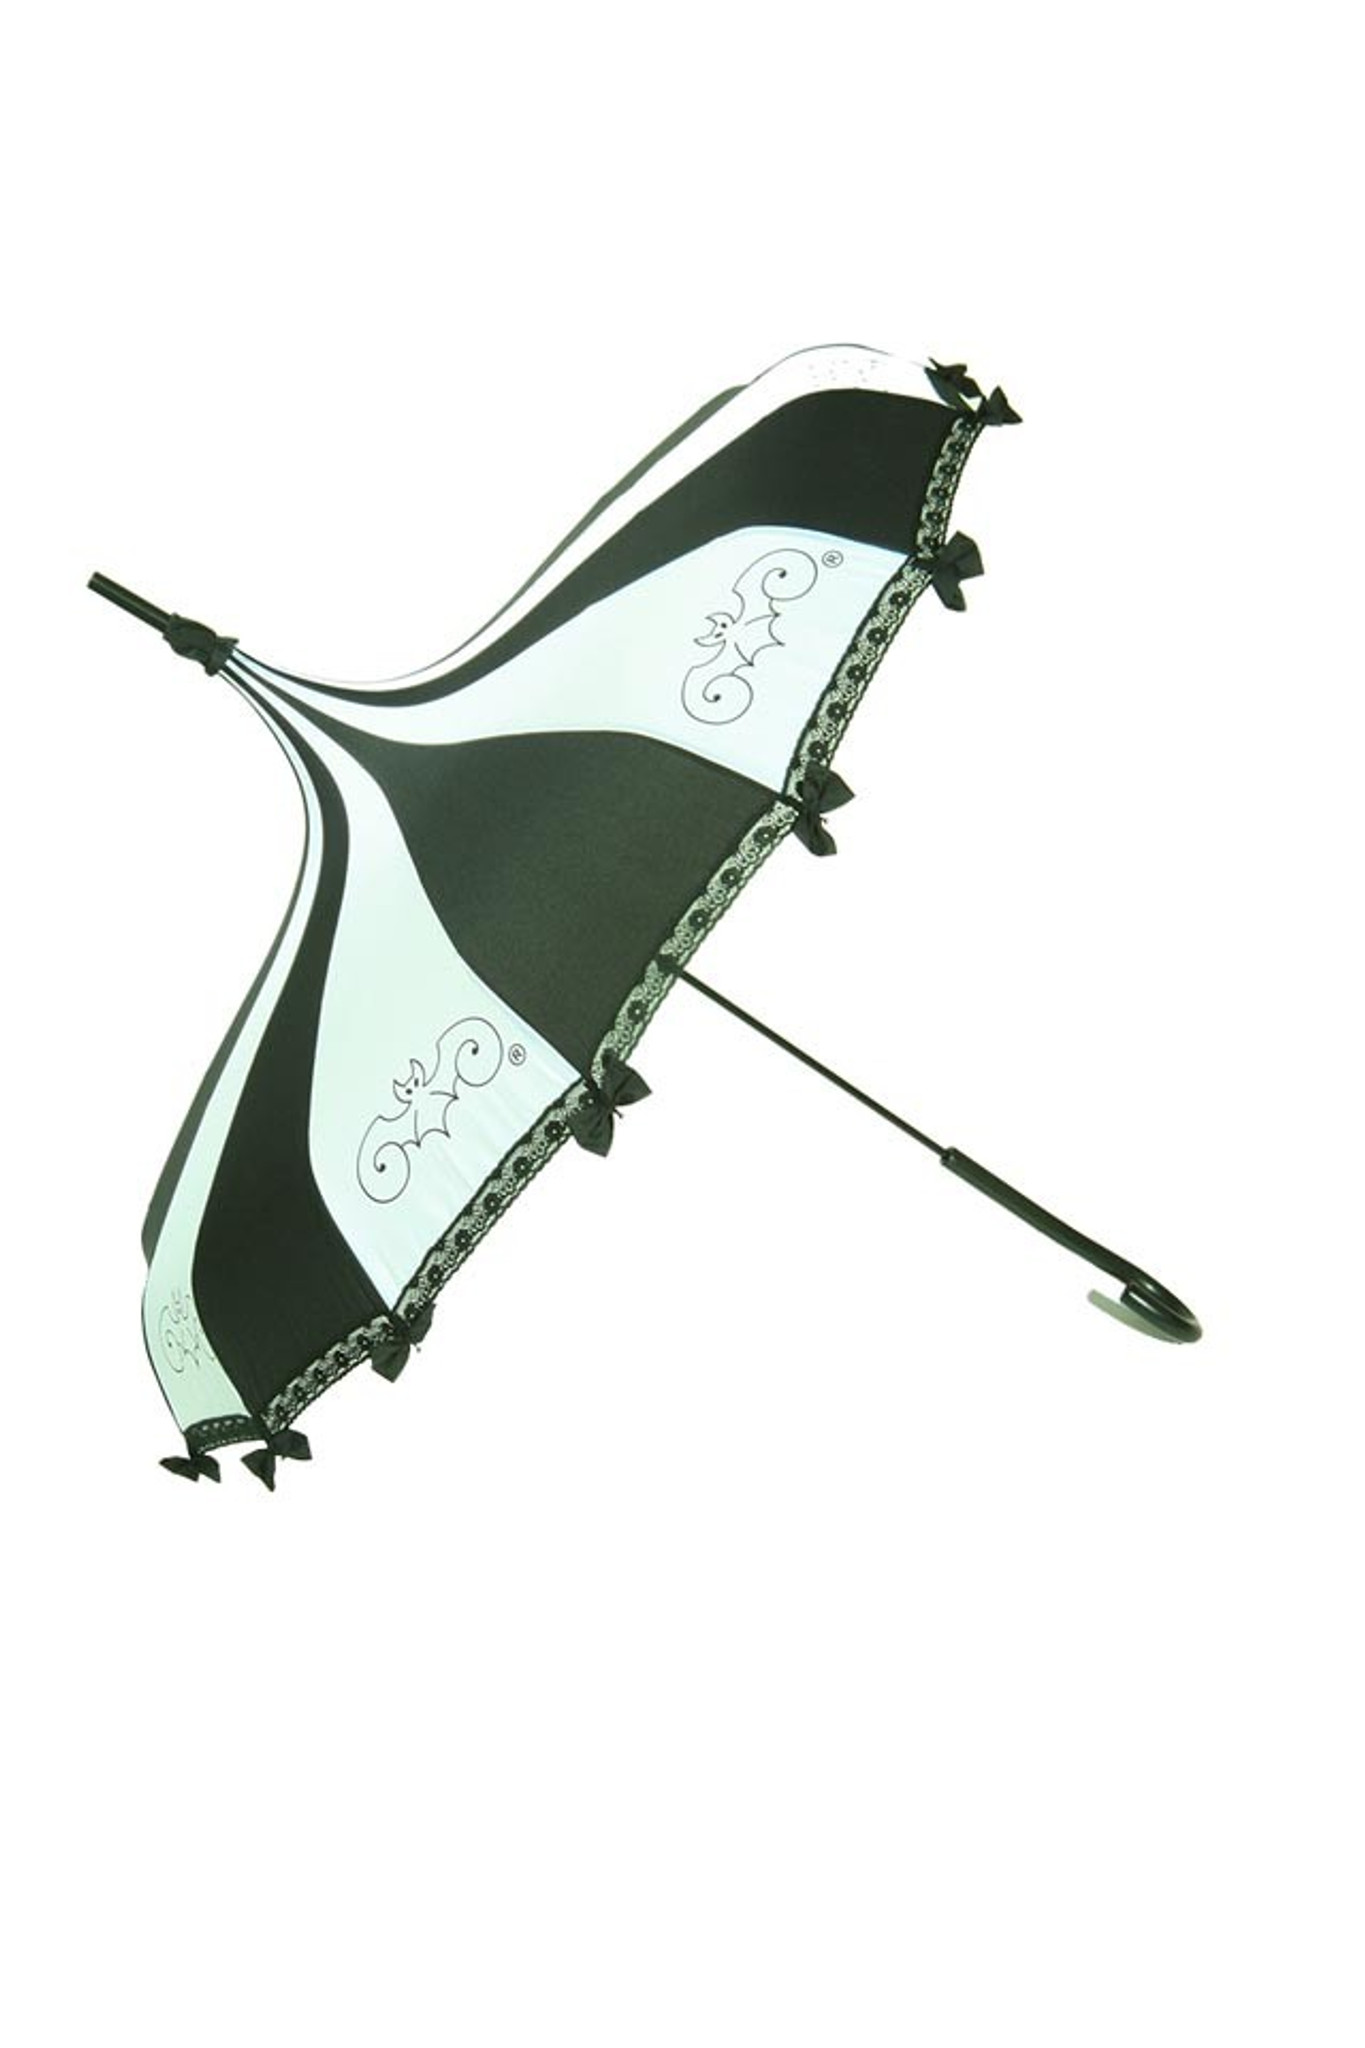 This beautiful Umbrella features a beautiful black and white panelled umbrella with bat logo. It has lace and bow details with a hook-style handle. Whether it is Sunny or Wet, this is a must-have accessory for all your weather needs (yes, that's right- this is a real umbrella and can get wet. It's not just a fashion piece, it's functional)! This Umbrella will complement your outfit or costume.  Pagoda Style Umbrella Black and white panels with bat logo Hook-styled handle Lace ans small black bows detail Sturdy Construction Use as a parasol or rainy weather umbrella  http://petuniarocks.com